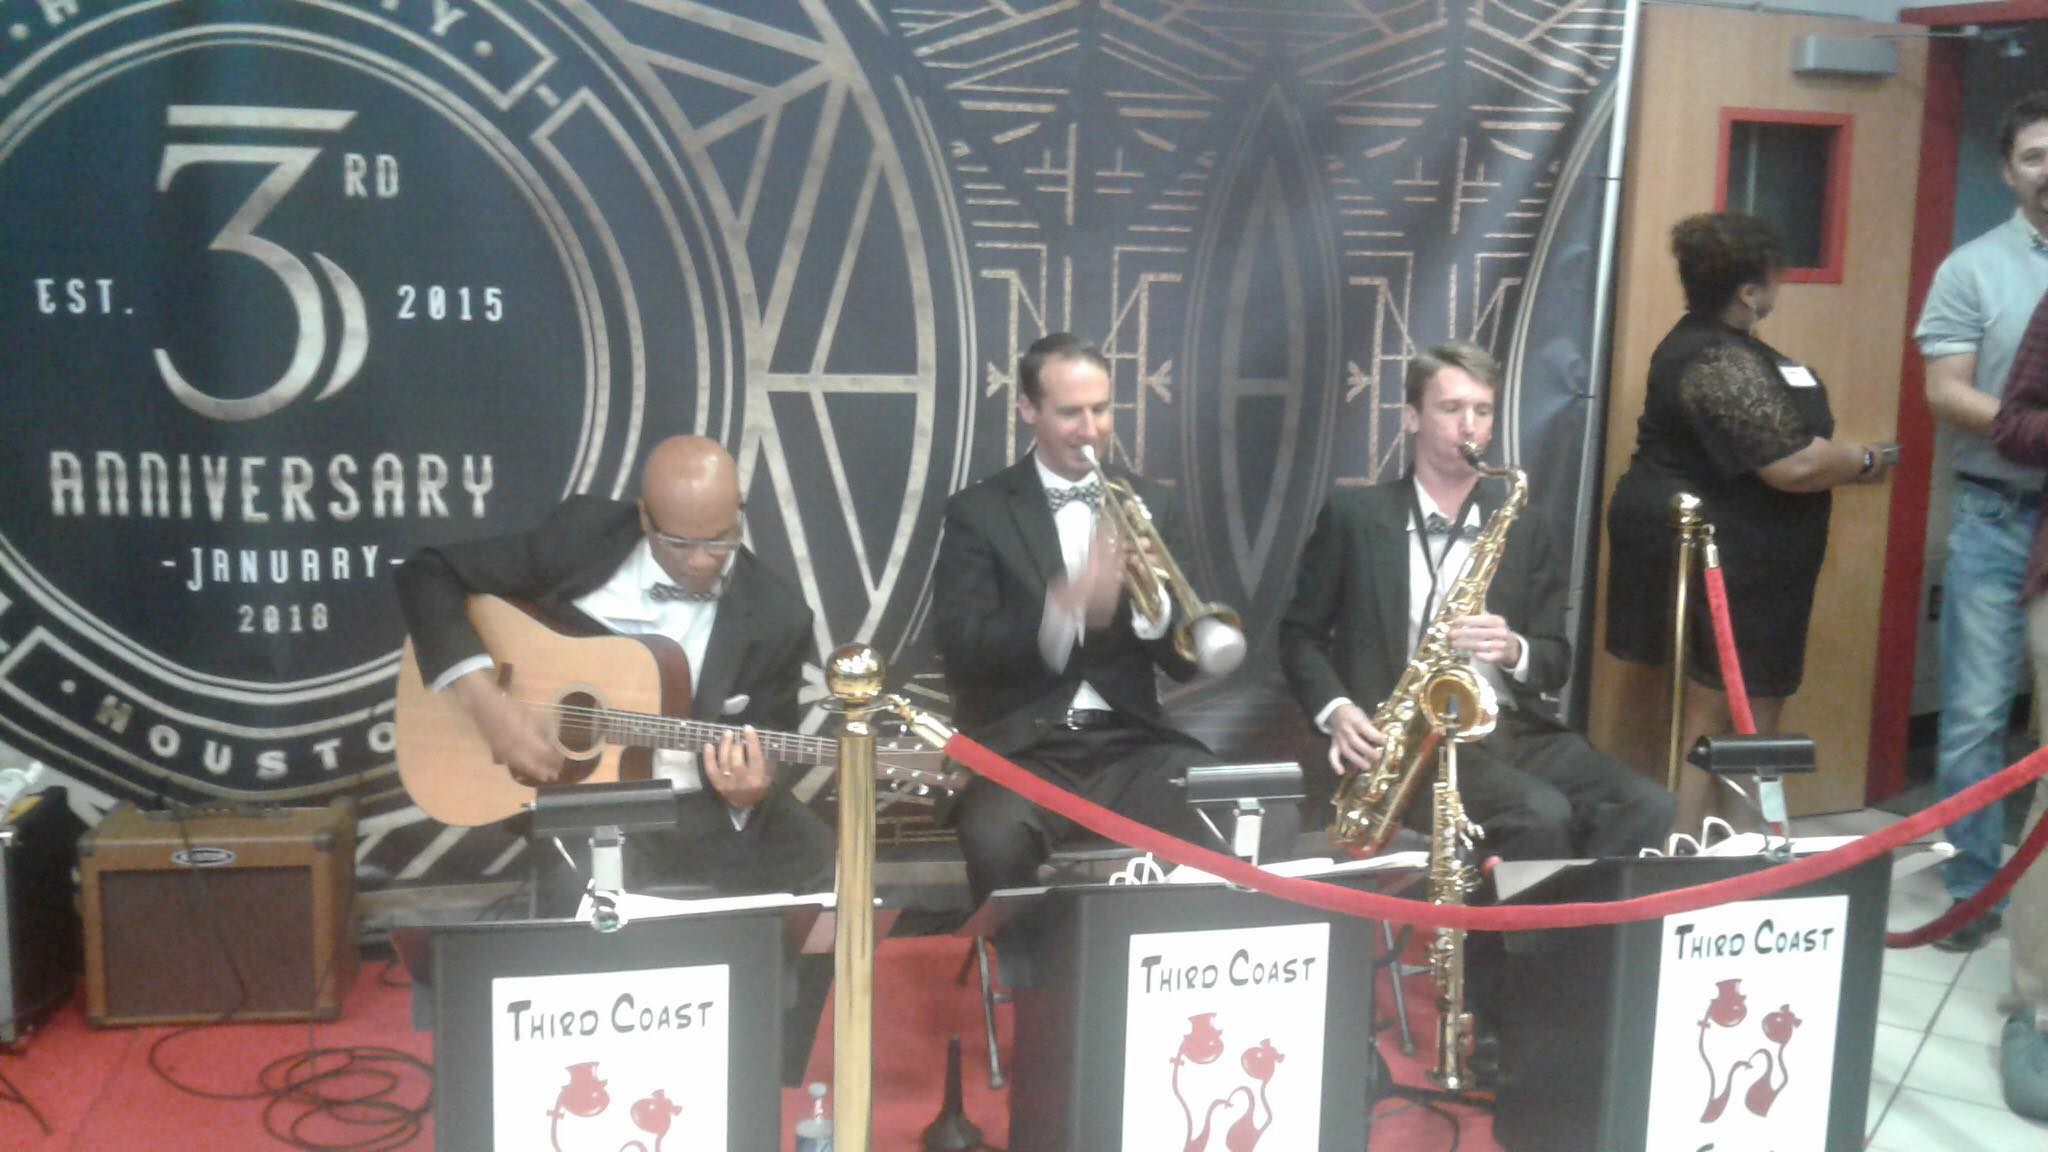 20s gig - Third Coast Swing